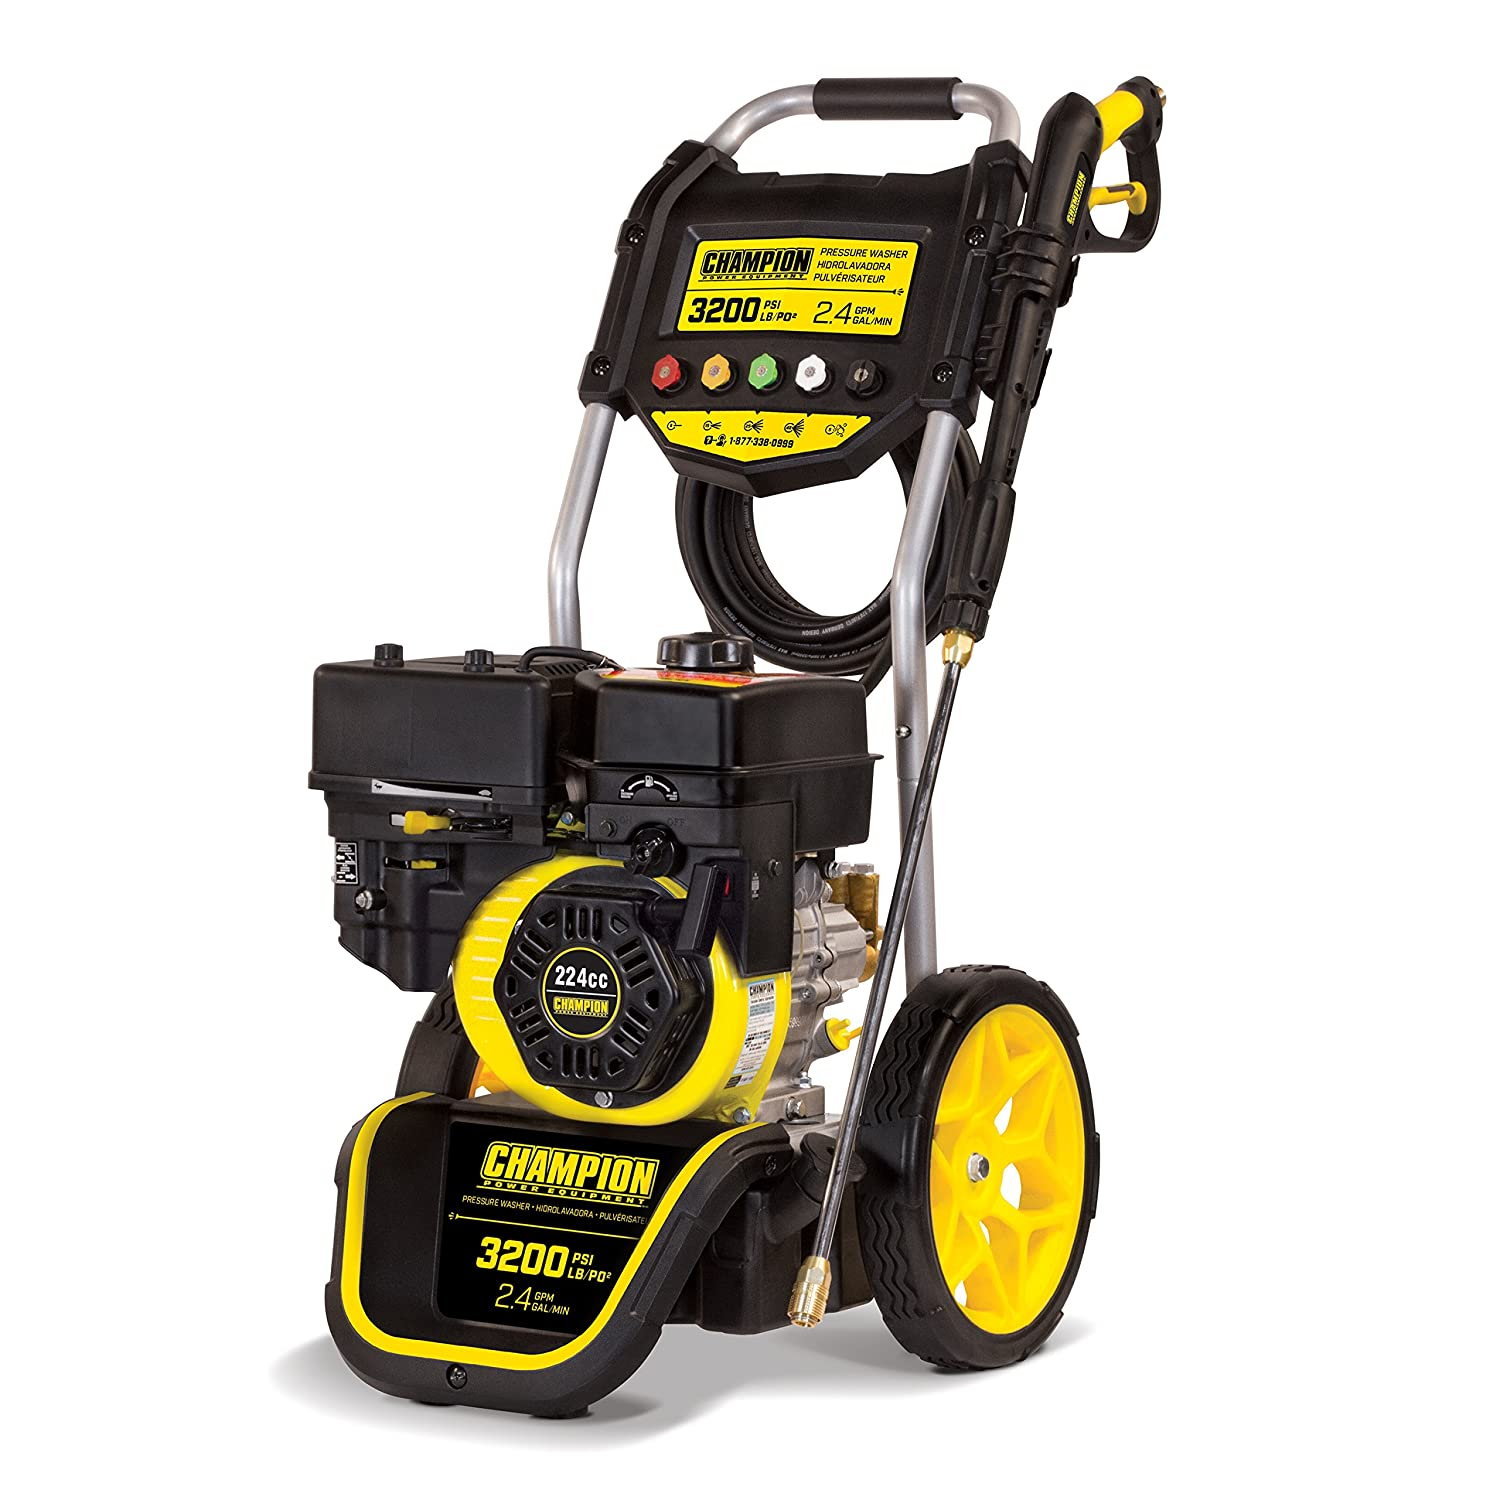 Amazon.com : Champion 3200-PSI 2.4-GPM Dolly-Style Gas Pressure Washer :  Garden & Outdoor